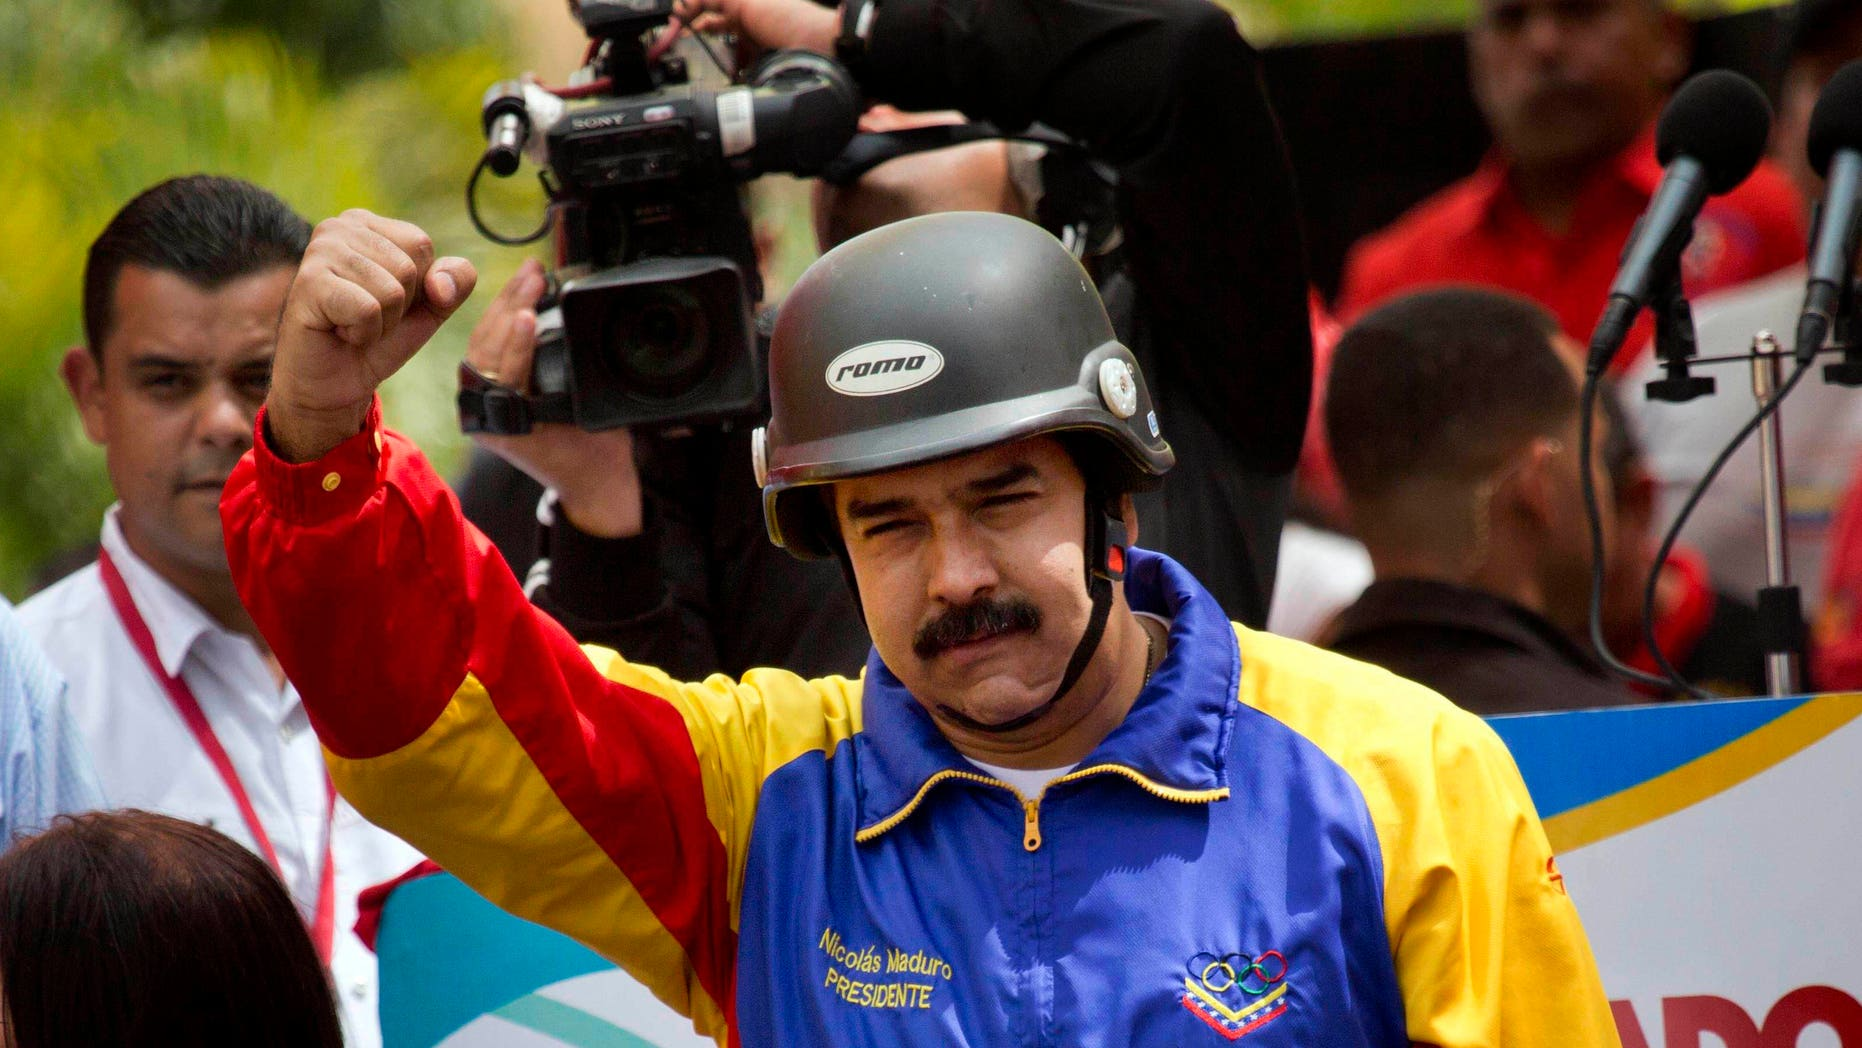 A helmet wearing Venezuelan President Nicolas Maduro cheers motorcyclists during a rally in support of his government in Caracas, Venezuela, Monday, Feb. 24, 2014. Since Feb. 12, opponents of President Nicolas Maduro have been staging countrywide protests that the government says have resulted in scores of deaths and more than more than a hundred injured. The demonstrators blame Maduro's administration for the country's high crime rate and economic troubles. (AP Photo/Rodrigo Abd)